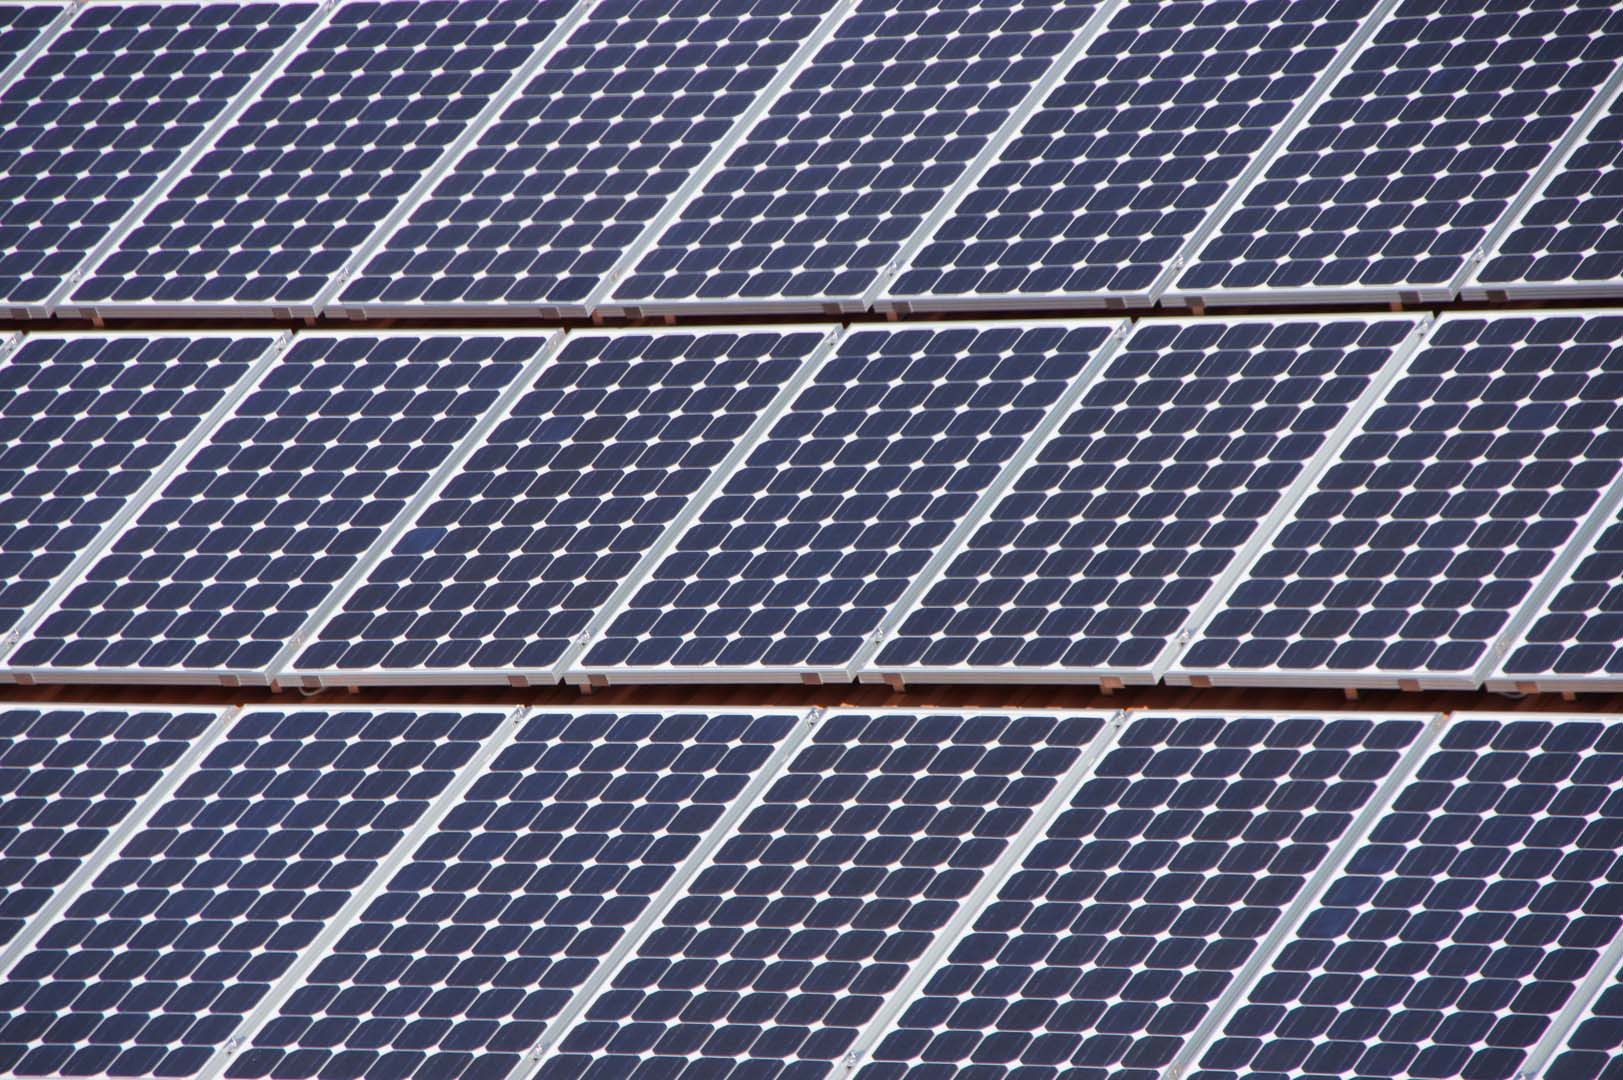 The solar acquisition program will focus on projects 5MW or higher in North America. Image: Martin Abegglen / Flickr